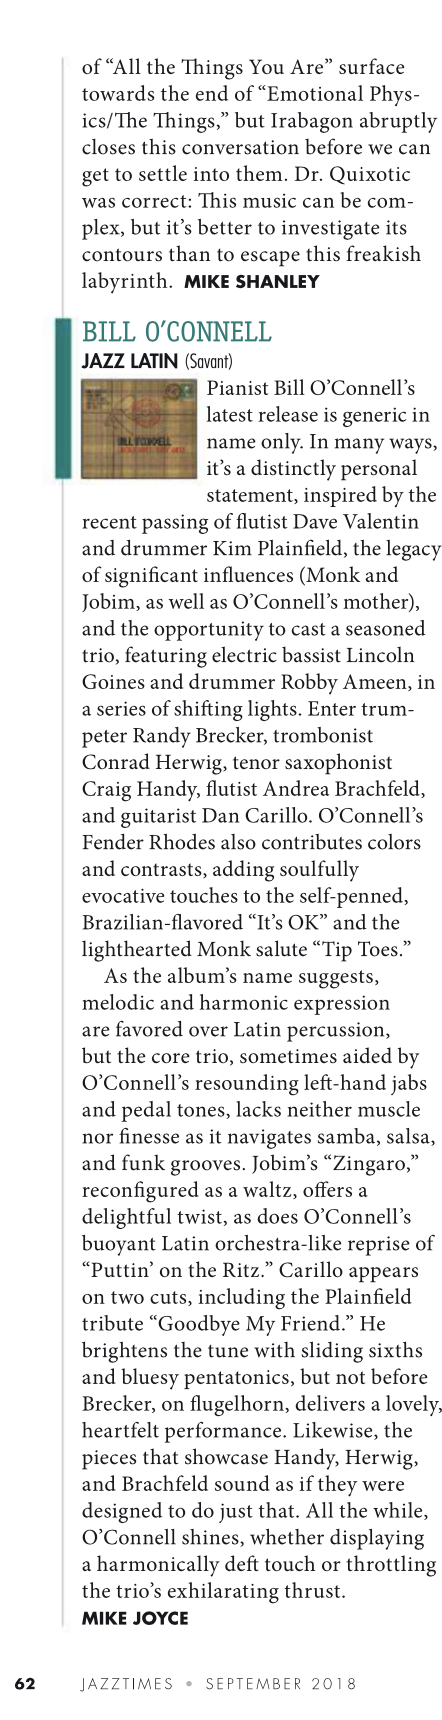 Bill O'Connell Lazz Latin JazzTimes Sept 2018.png